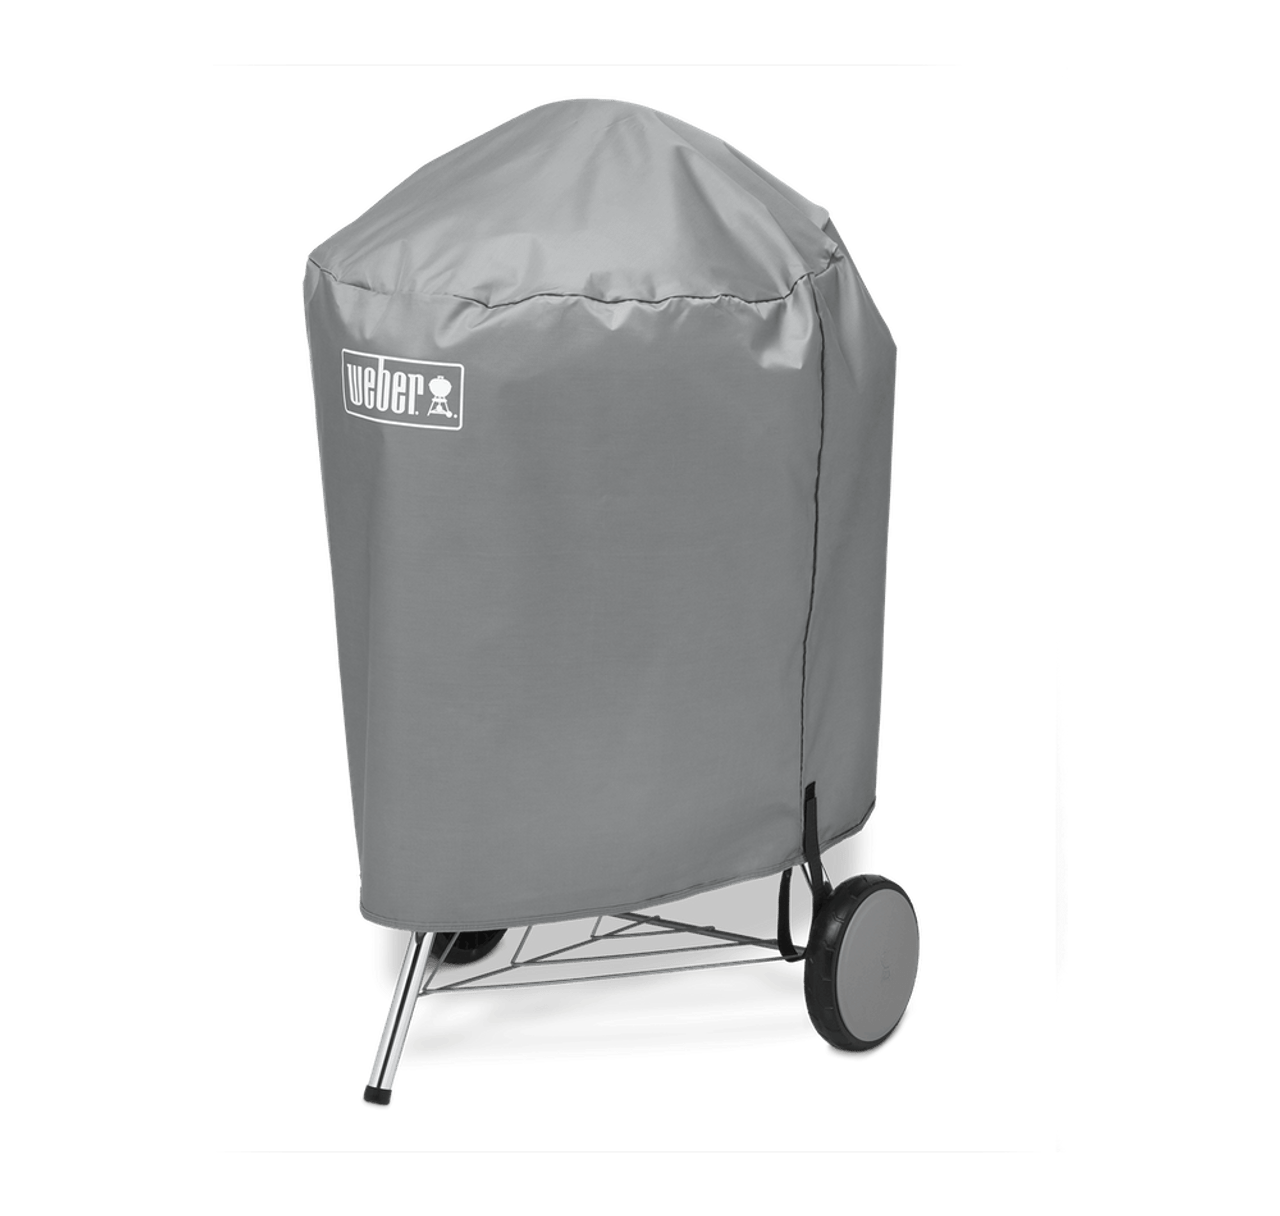 Weber Grill Cover - Fits 57cm Charcoal Grills